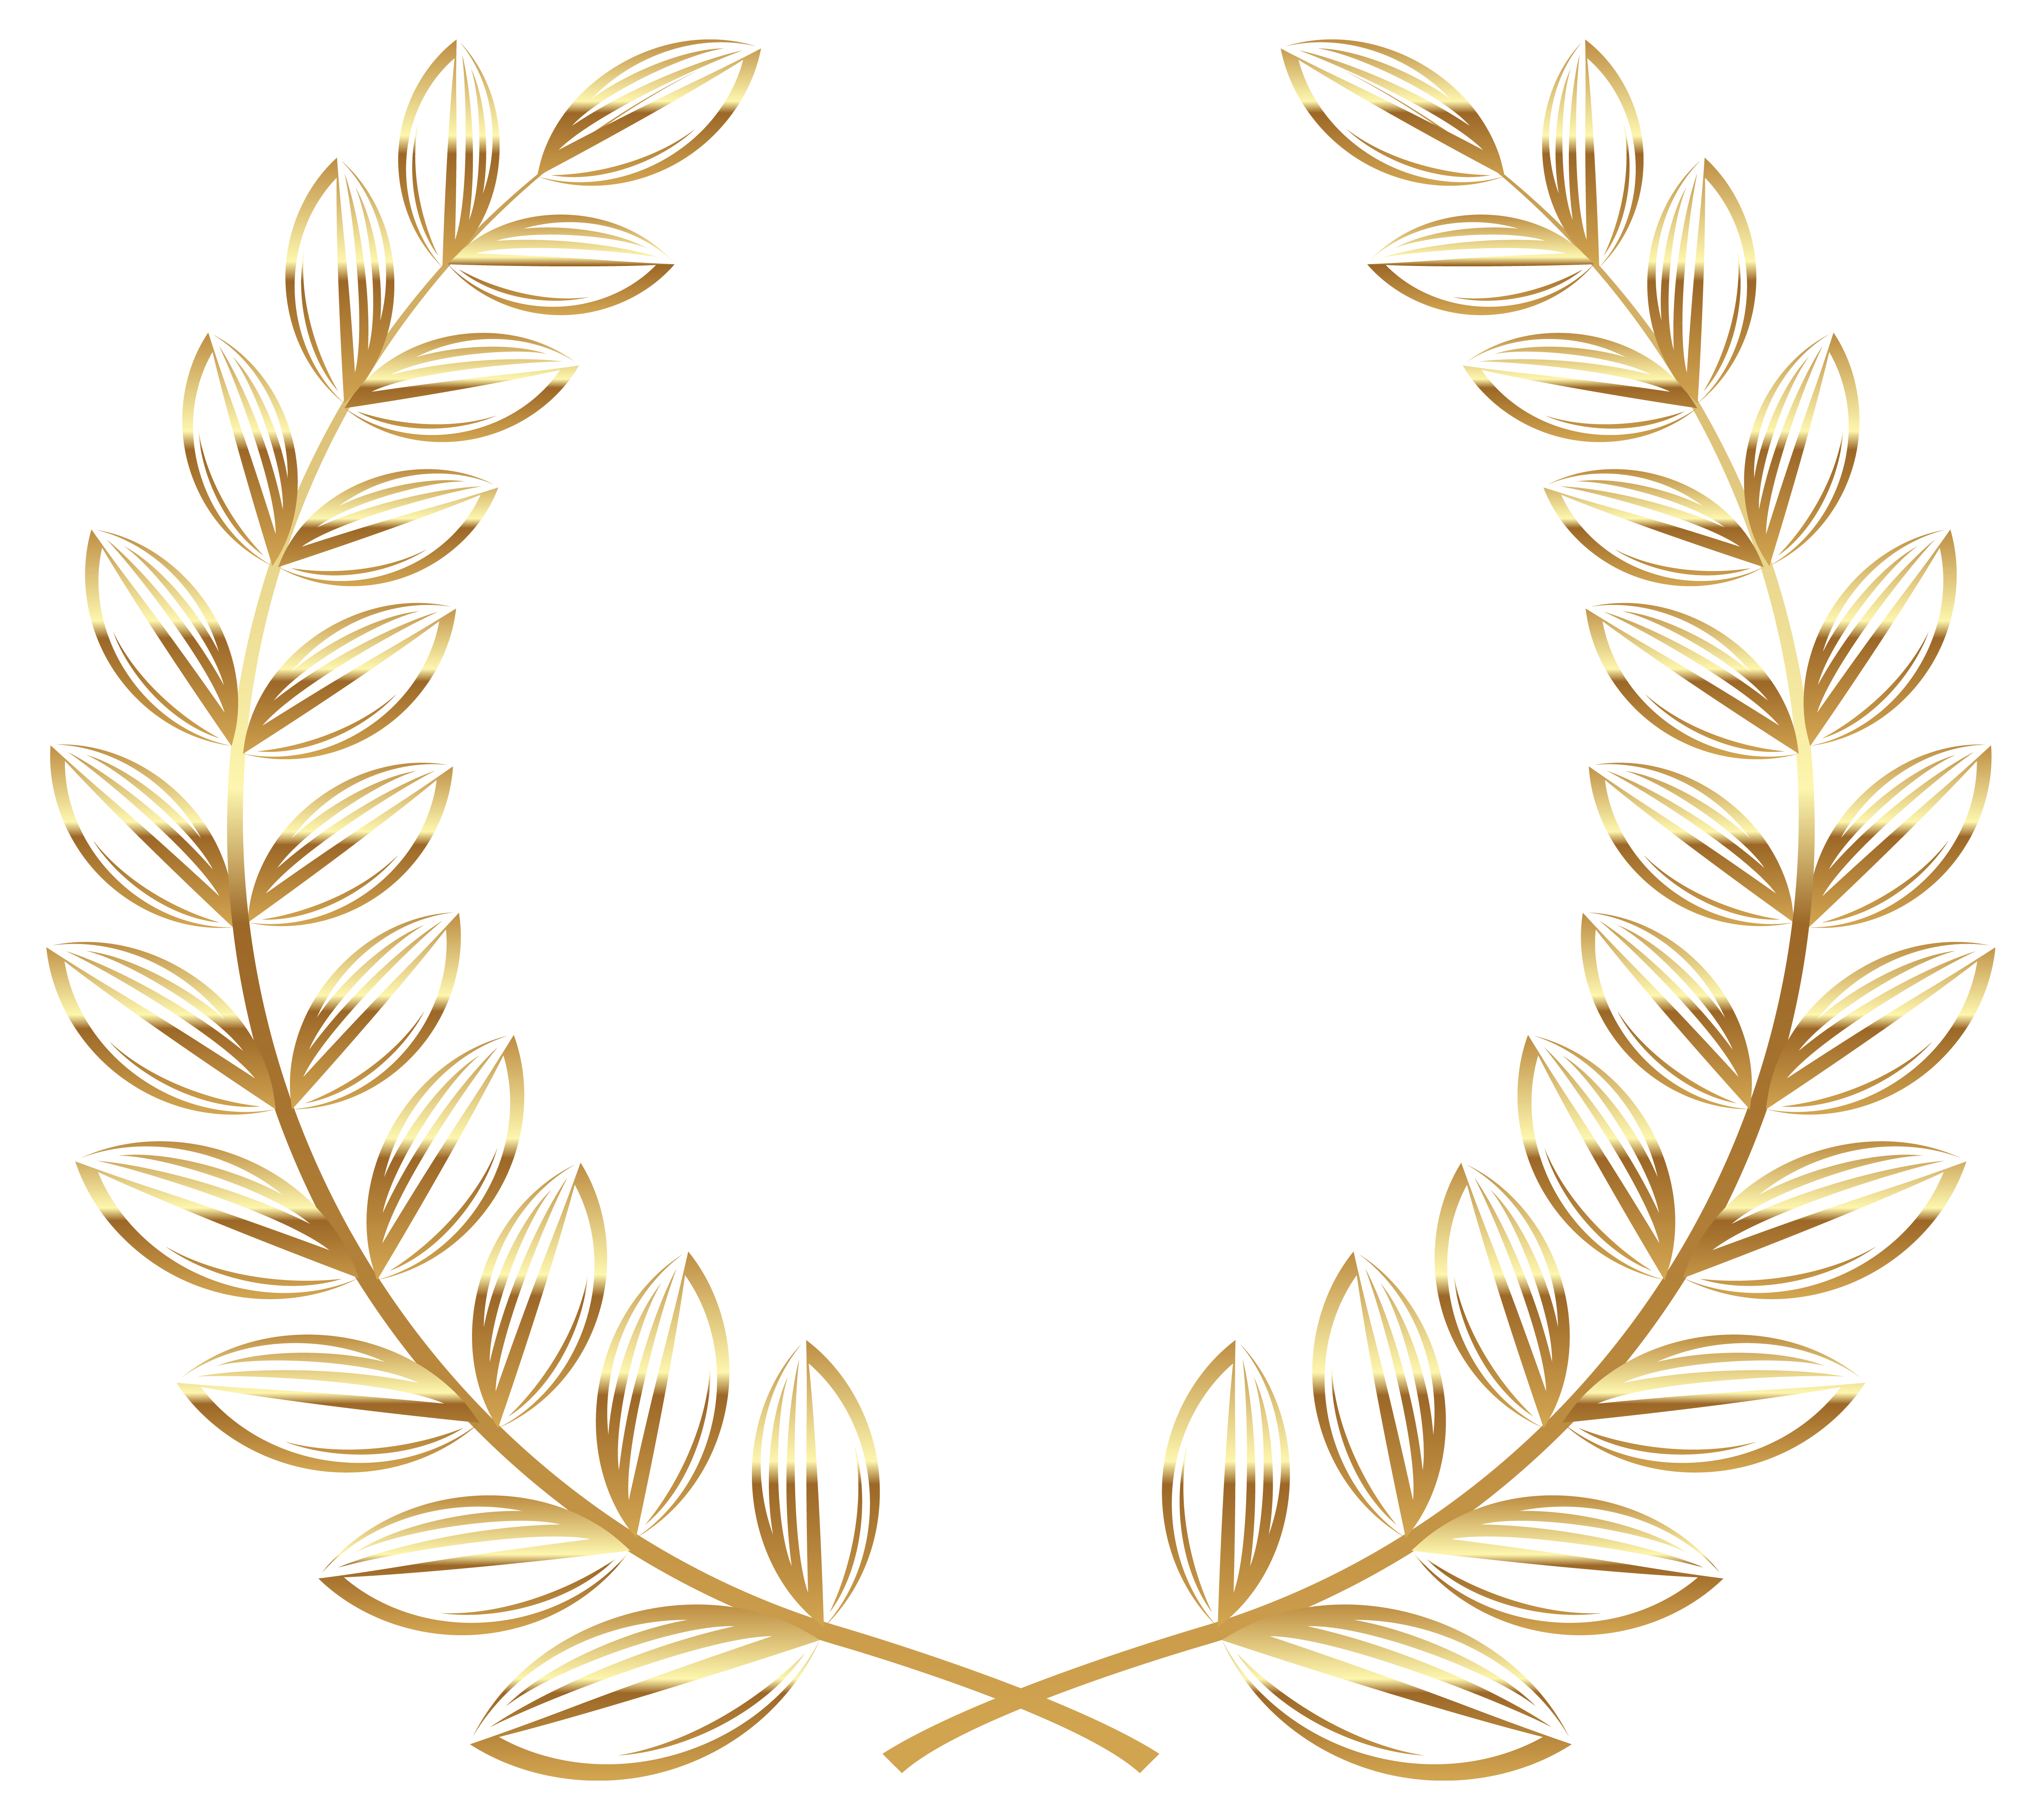 Golden Wreath Transparent Png Clipart Picture Gallery Yopriceville High Quality Images And Transparent Png Free Golden Wreath Clip Art Floral Logo Design